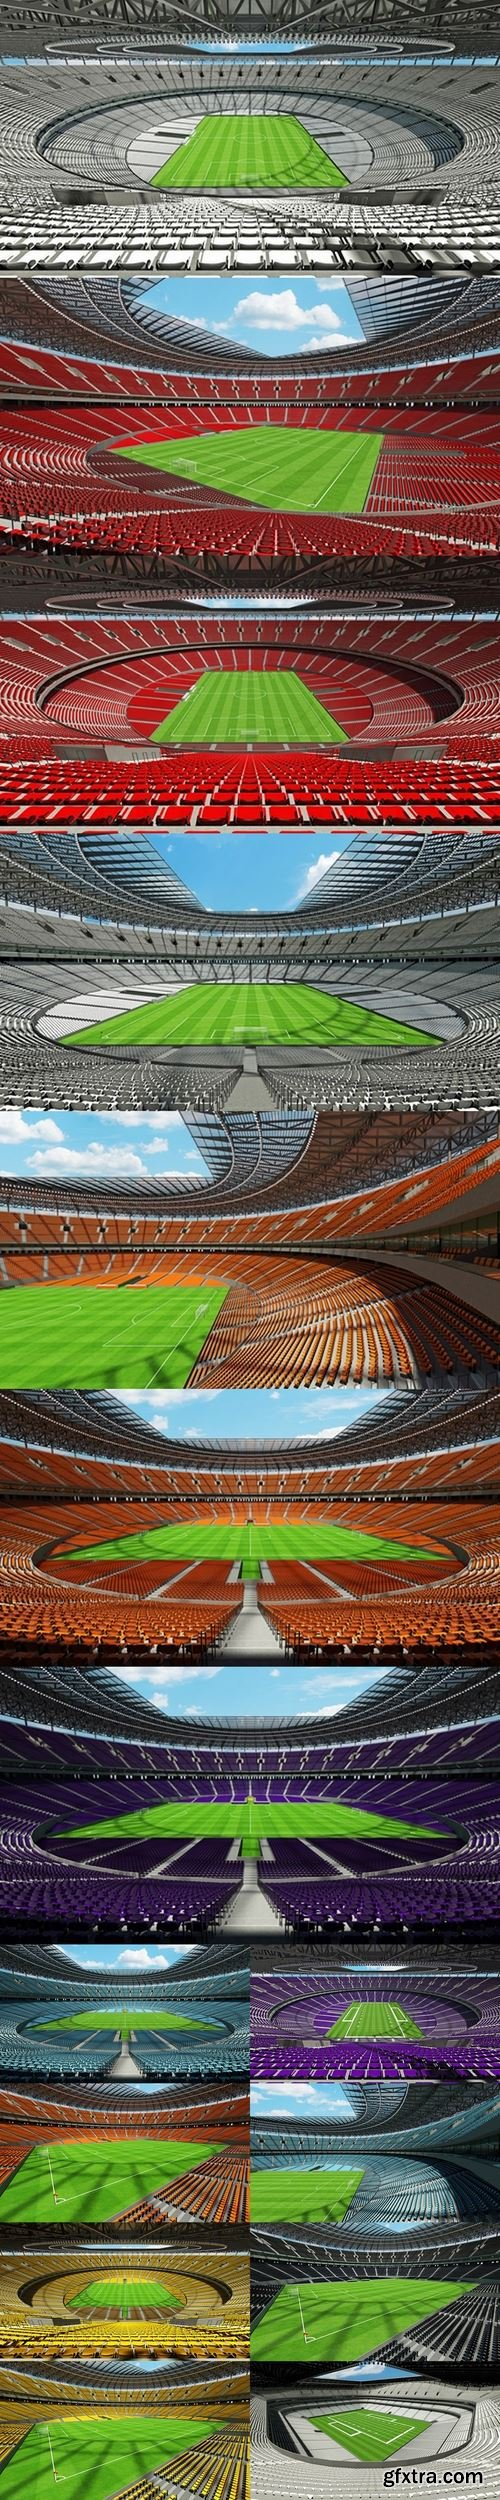 3D render of a round football - soccer stadium with yellow seats and VIP boxes